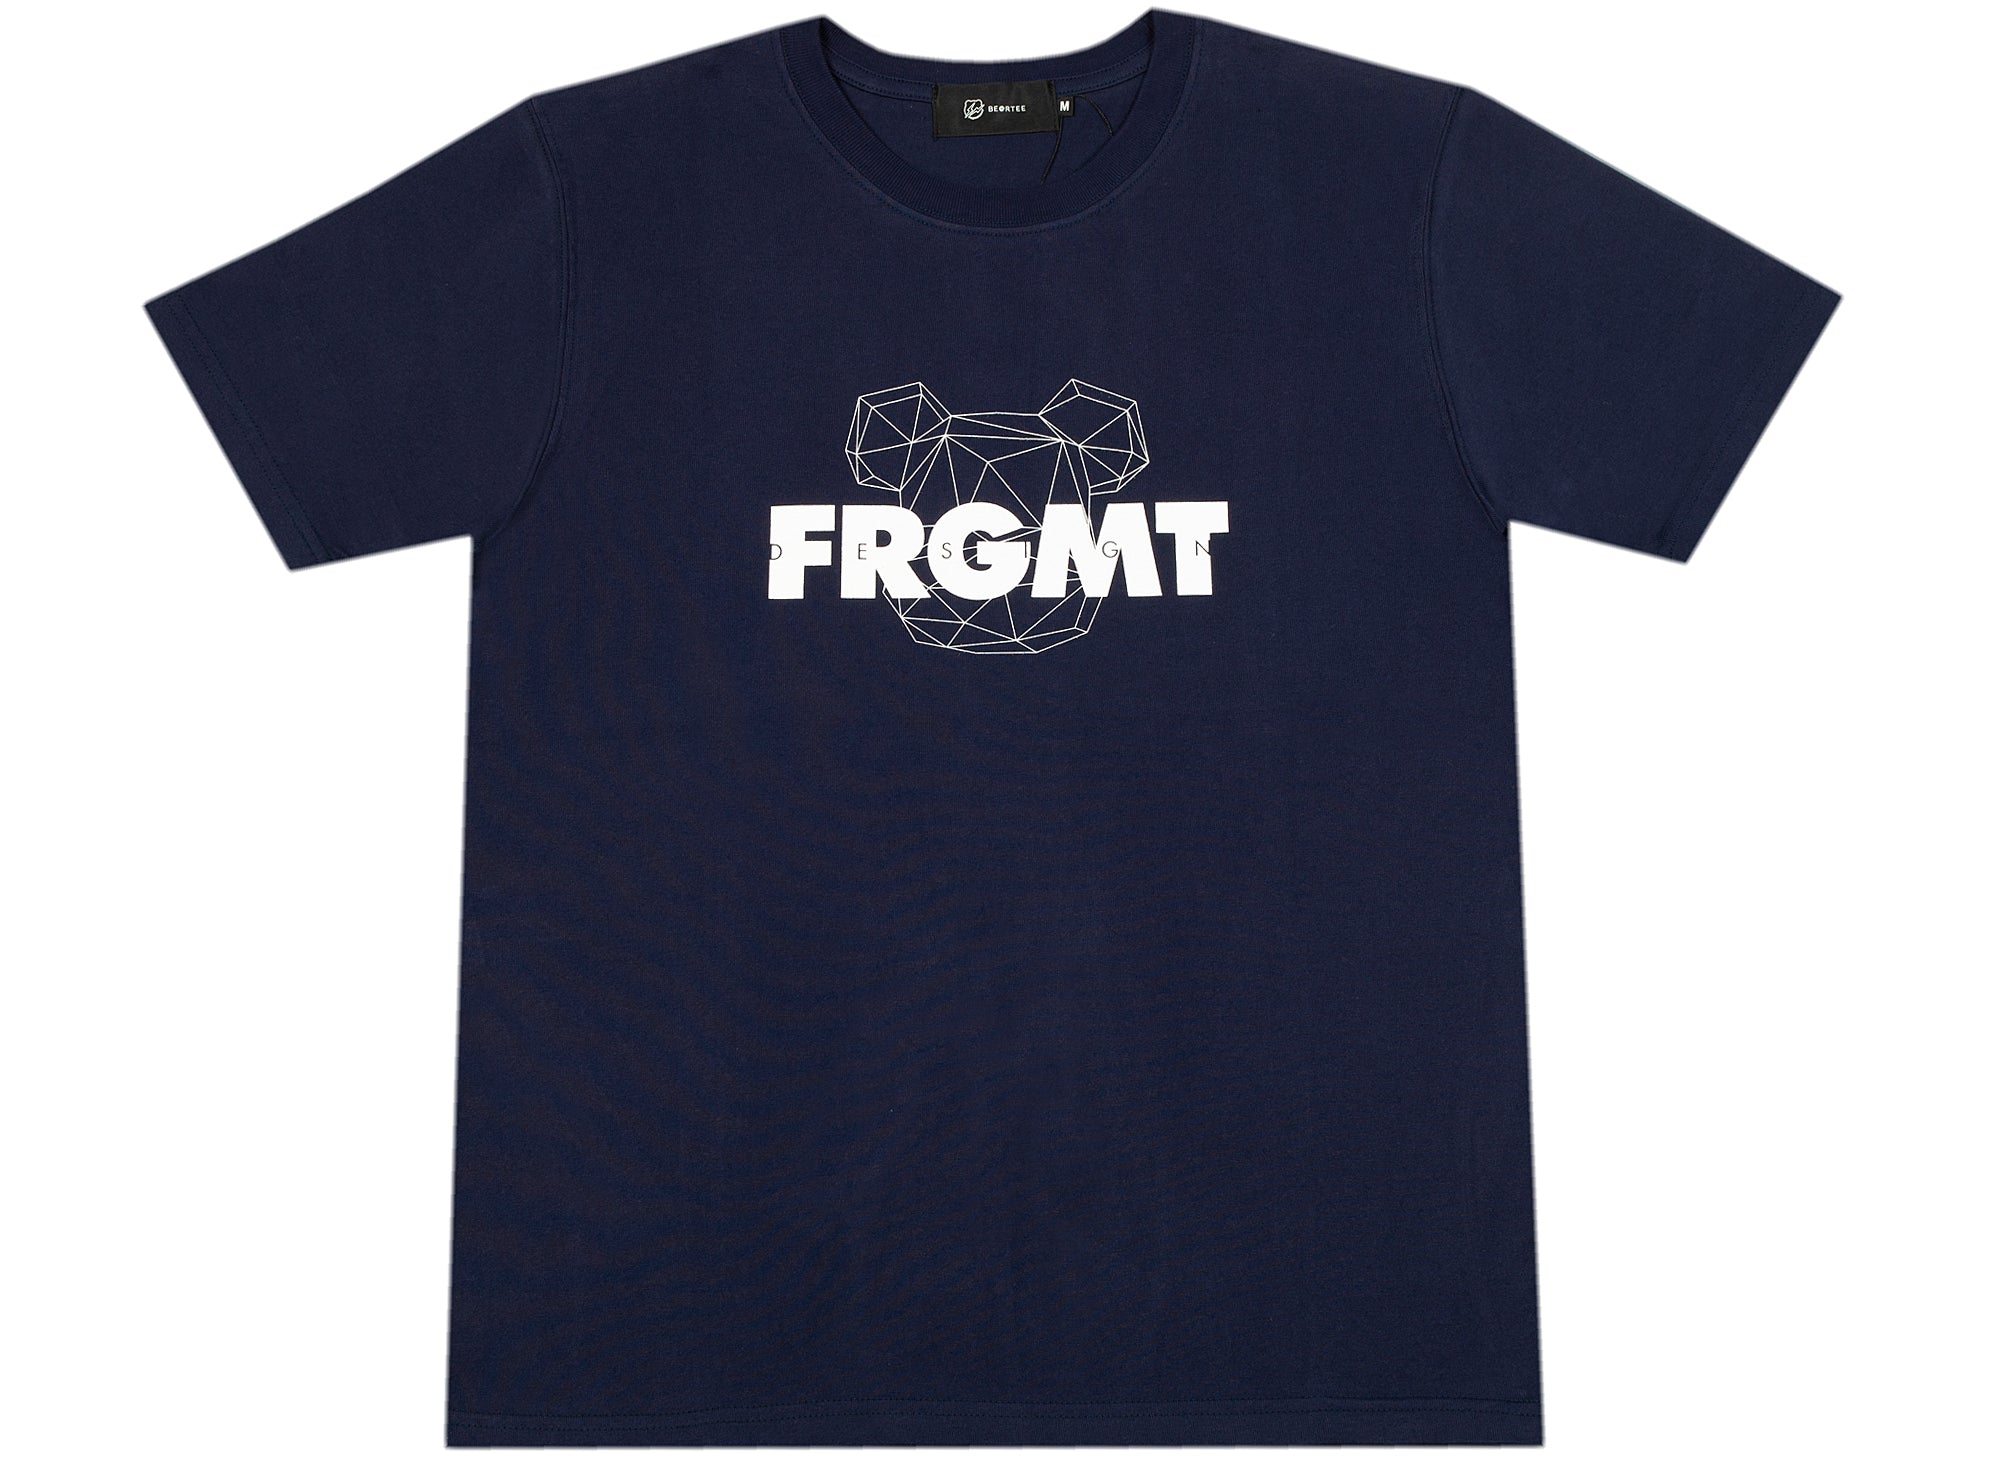 Medicom Toy Be@rtree x fragmentdesign 2020 Spray Logo Tee in Navy xld